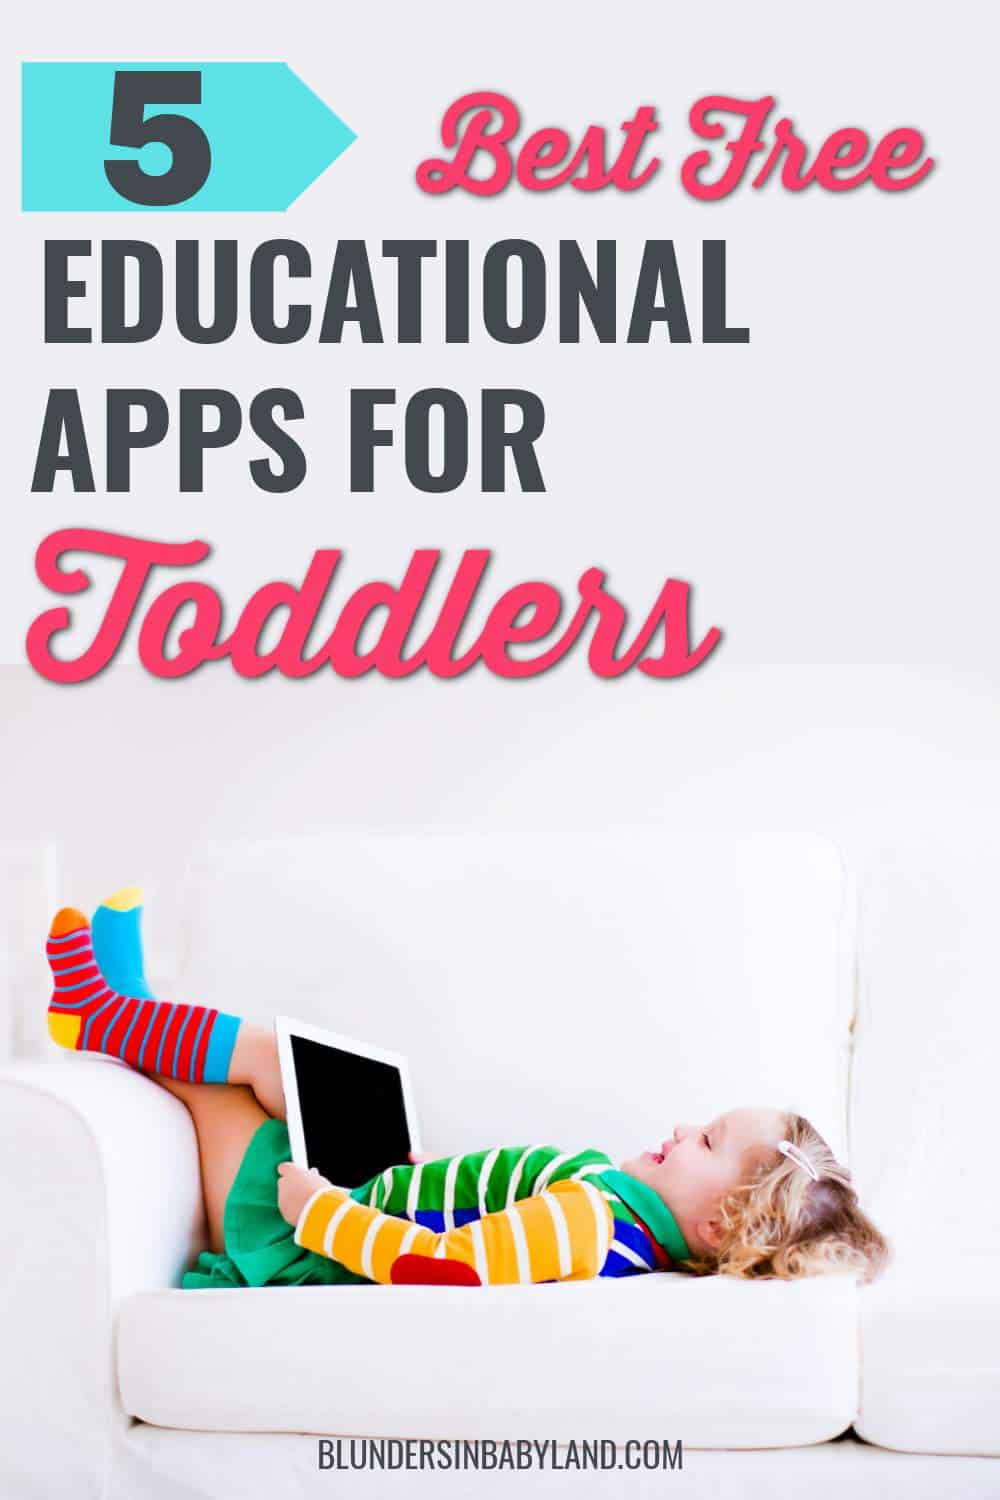 Best Free Educational Apps for Toddlers - Free Toddler Apps